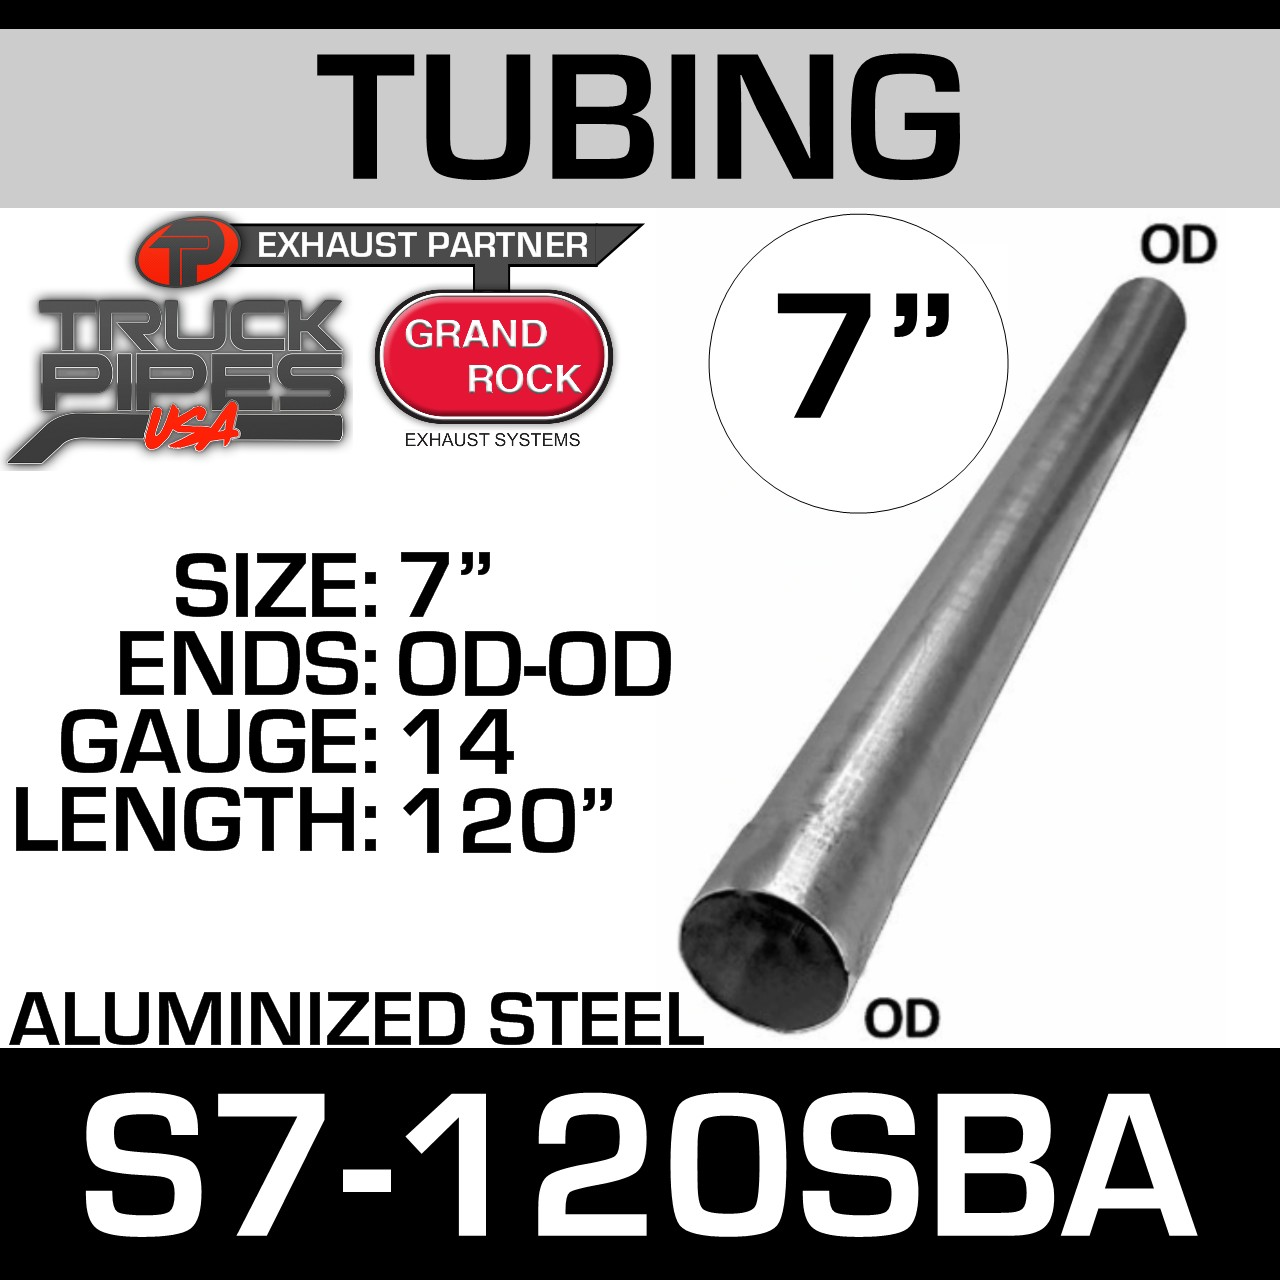 s7-120sba-aluminized-steel-exhaust-tubing-7-inch-diameter-od-end-120-inches-long.jpg